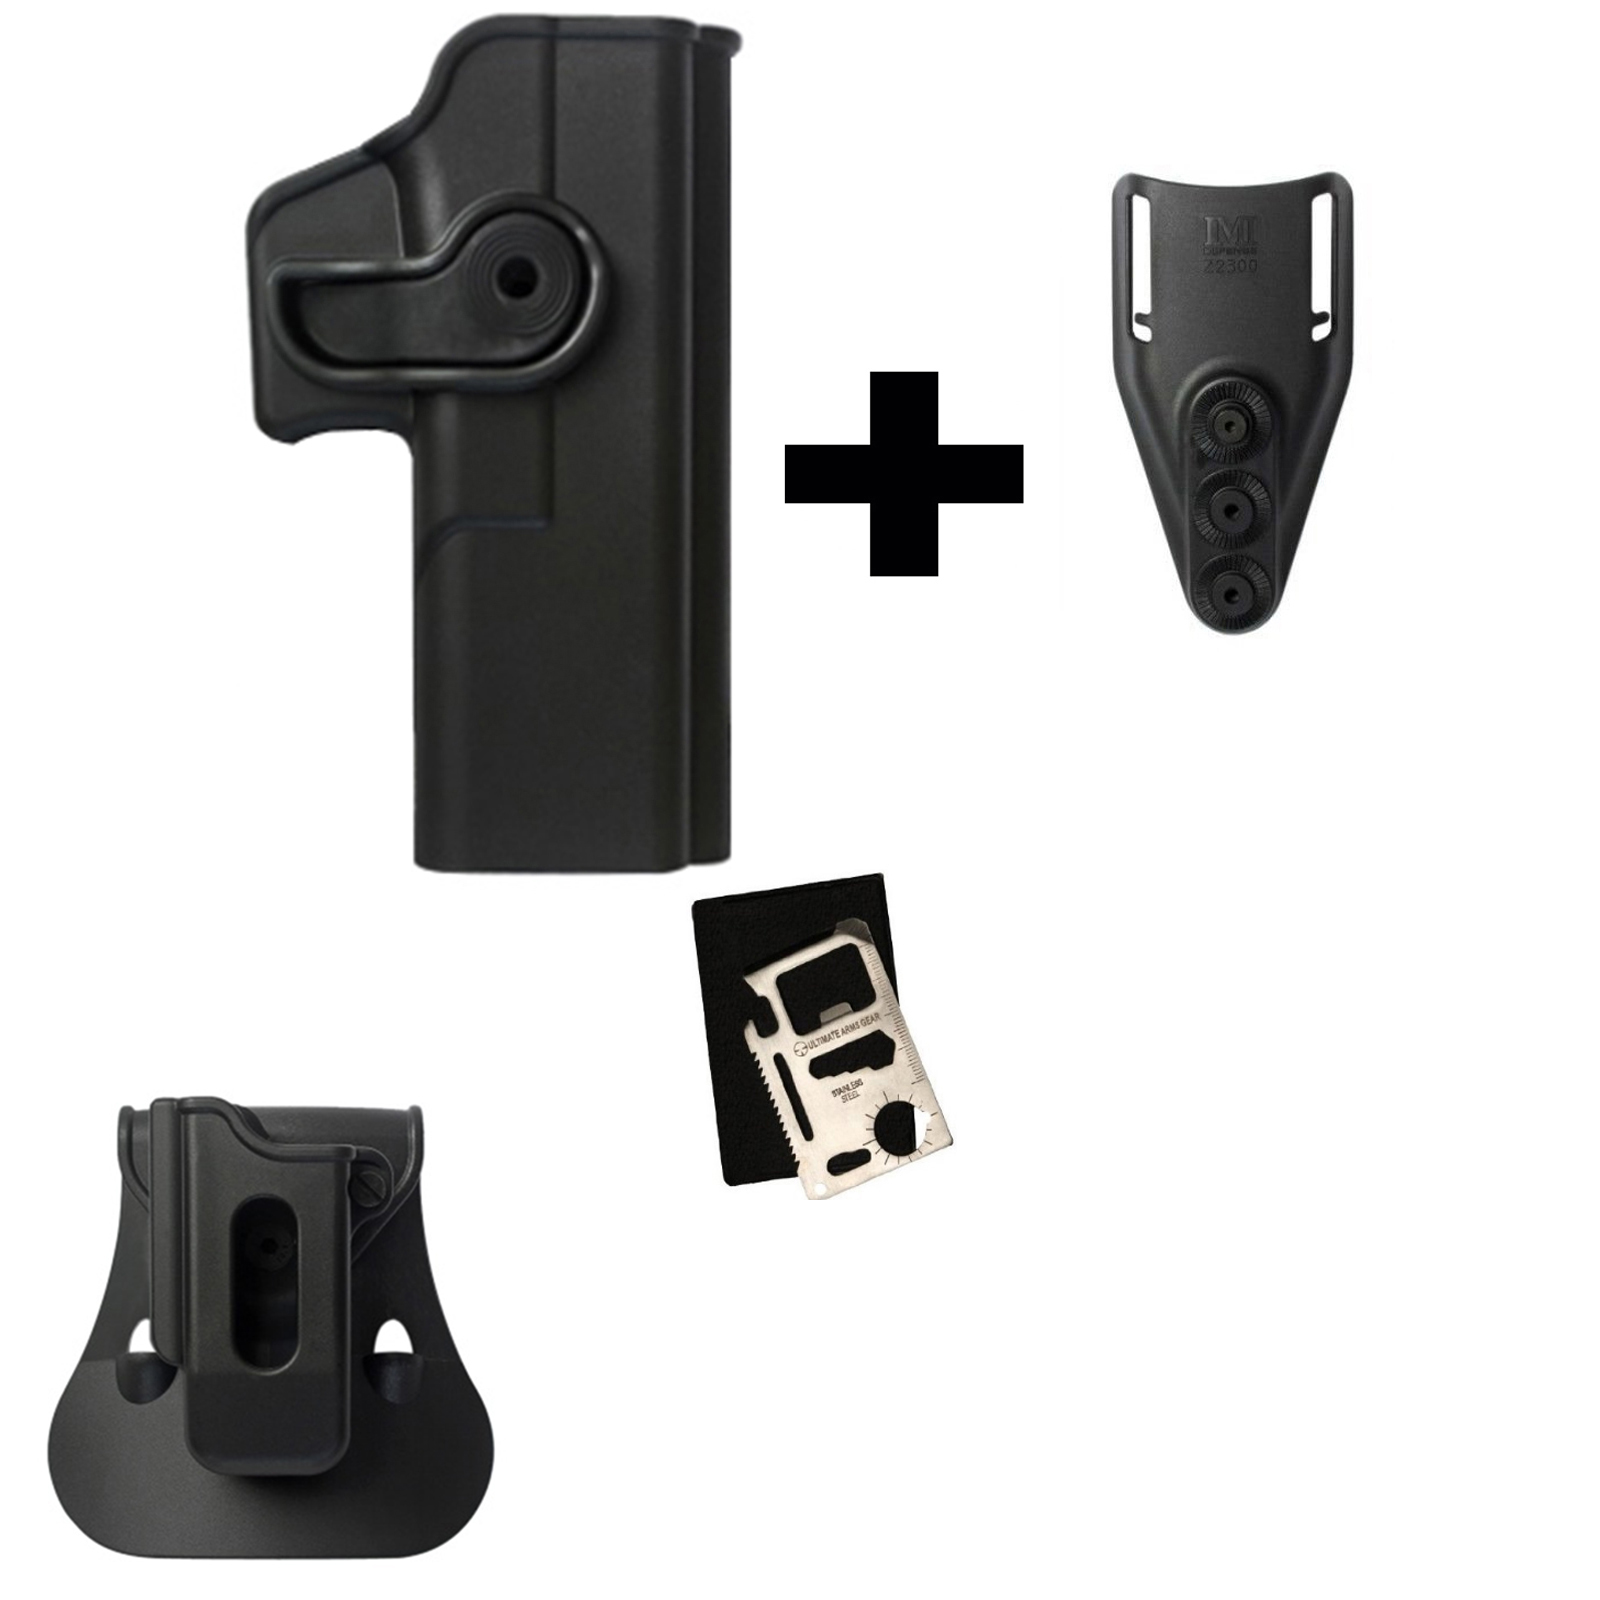 IMI Defense ZSP08 Single Mag Pouch & Paddle + Z1050 Rotate Holster Glock 20 21 28 30 37 38 Right Hand Gen 4 Compatible,... by